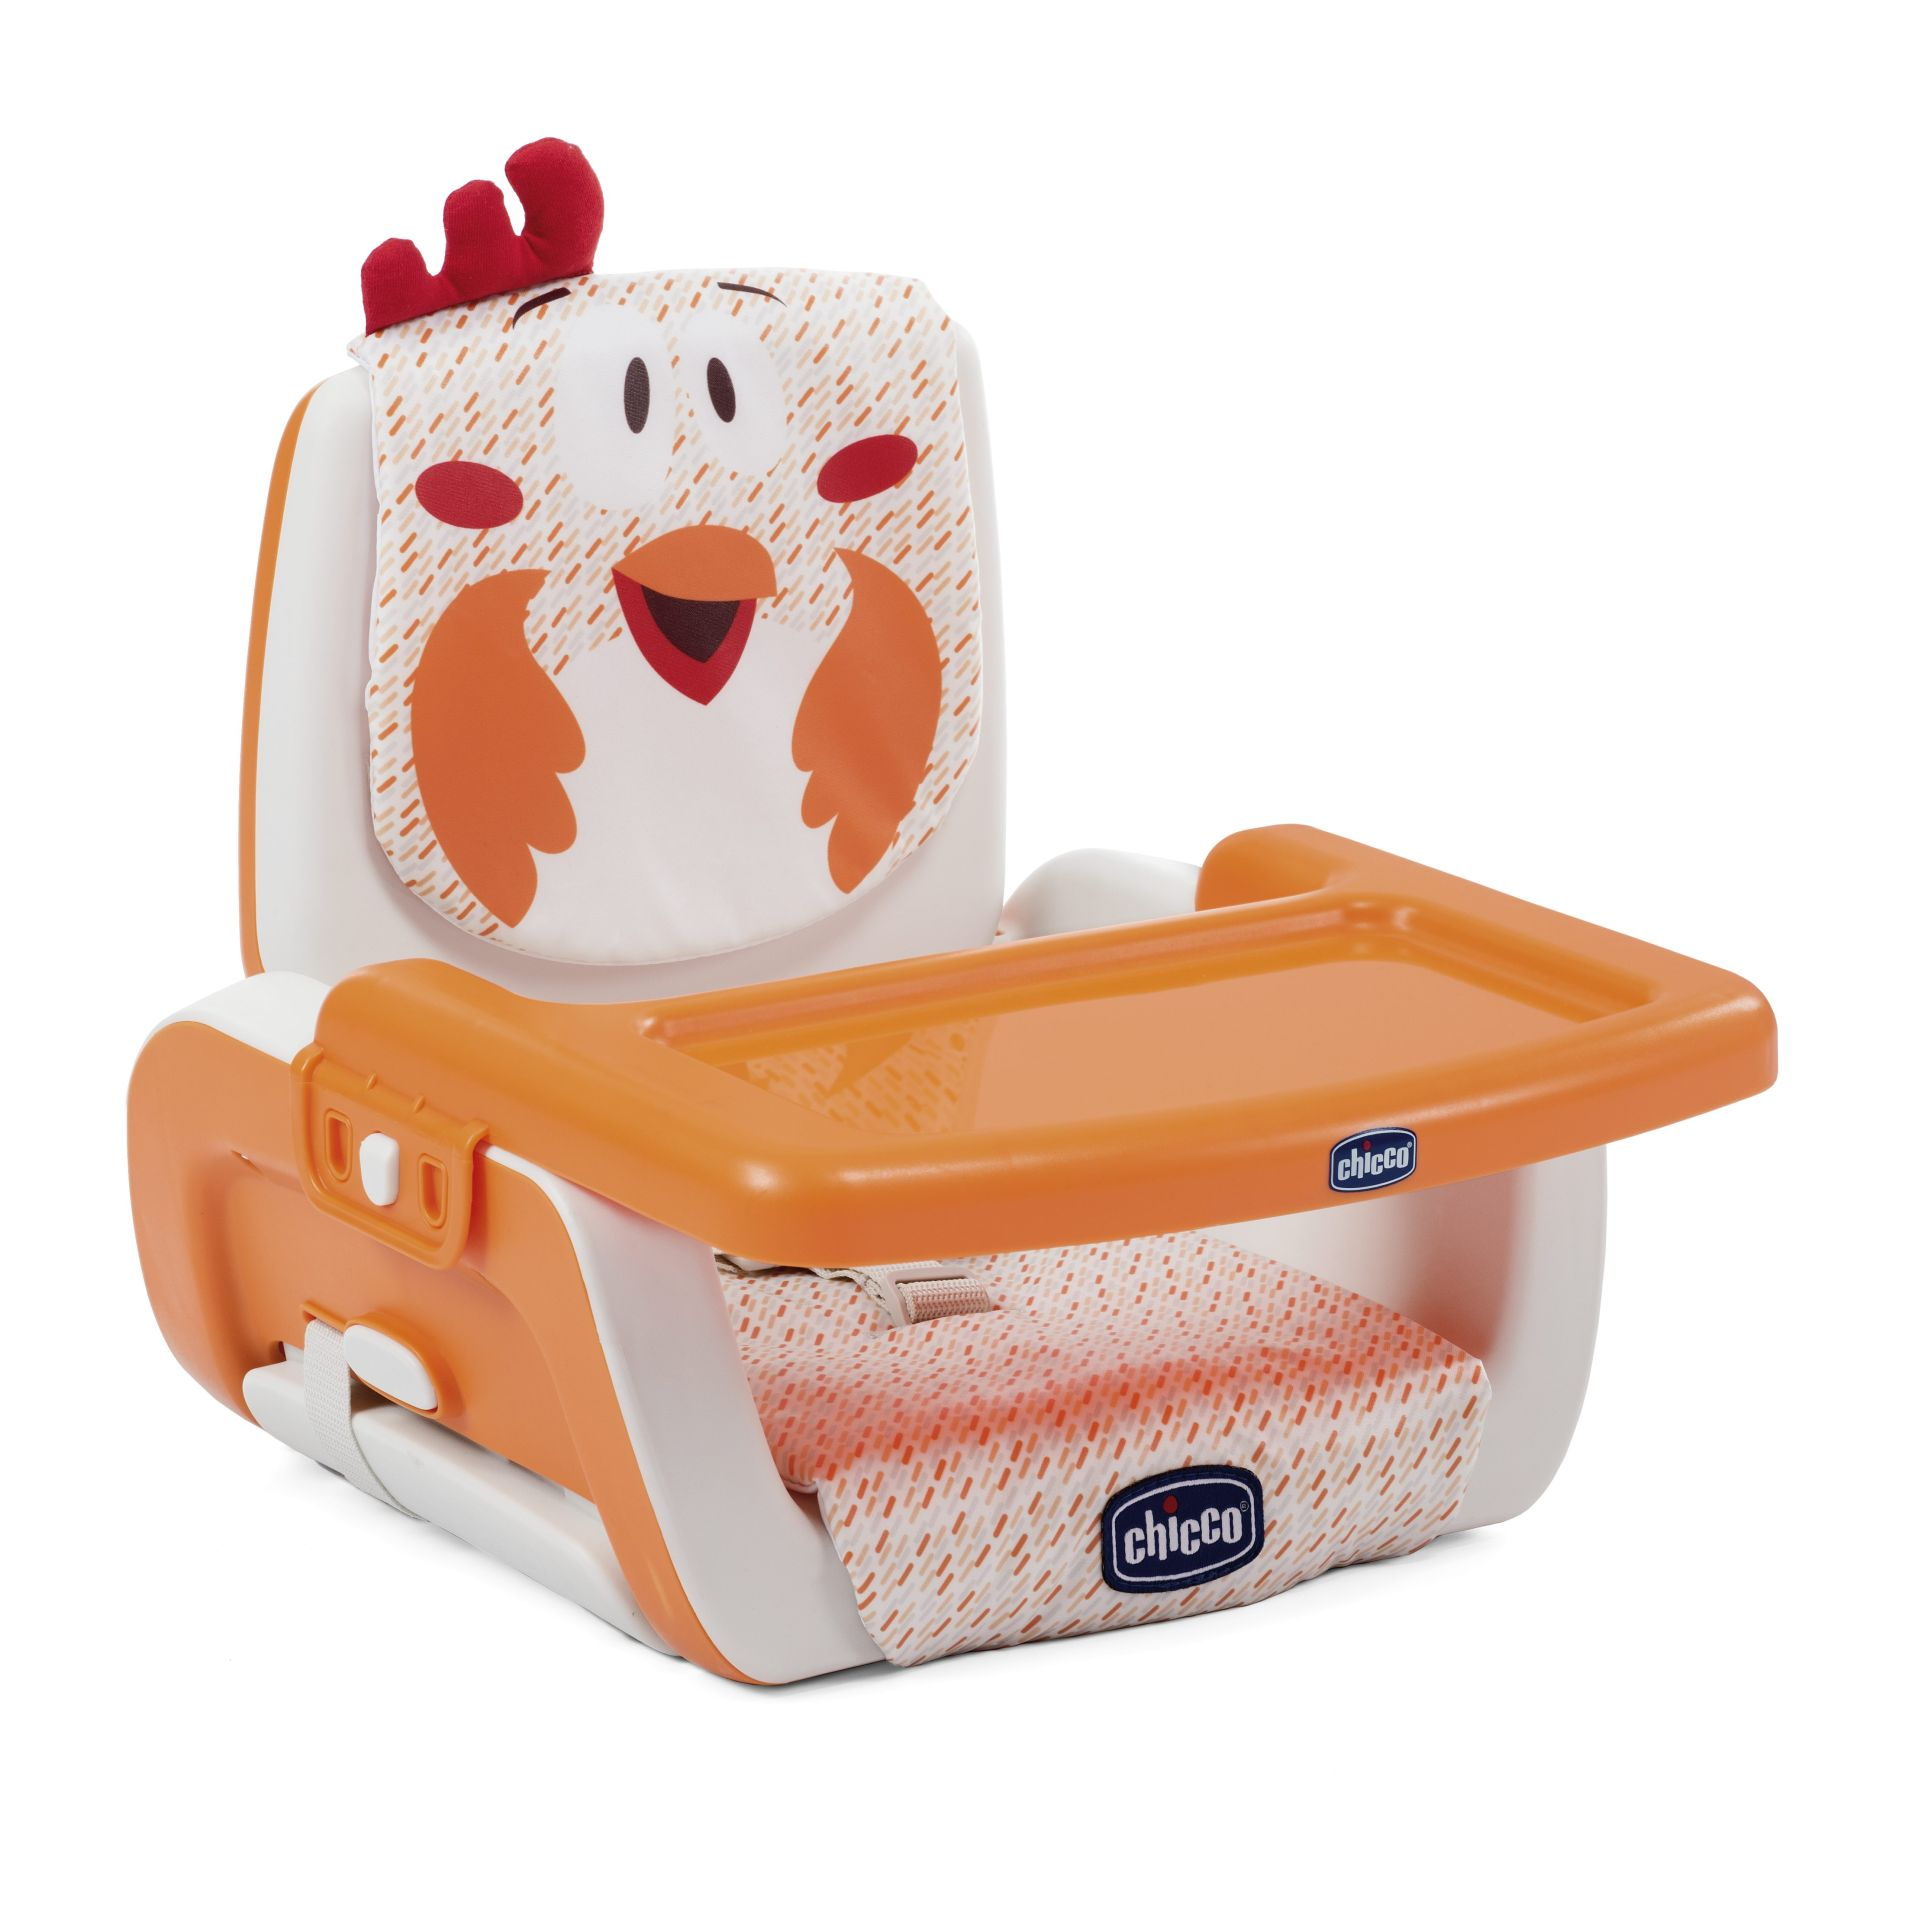 Chicco Booster Seat Mode 2018 Fancy Chicken Buy At